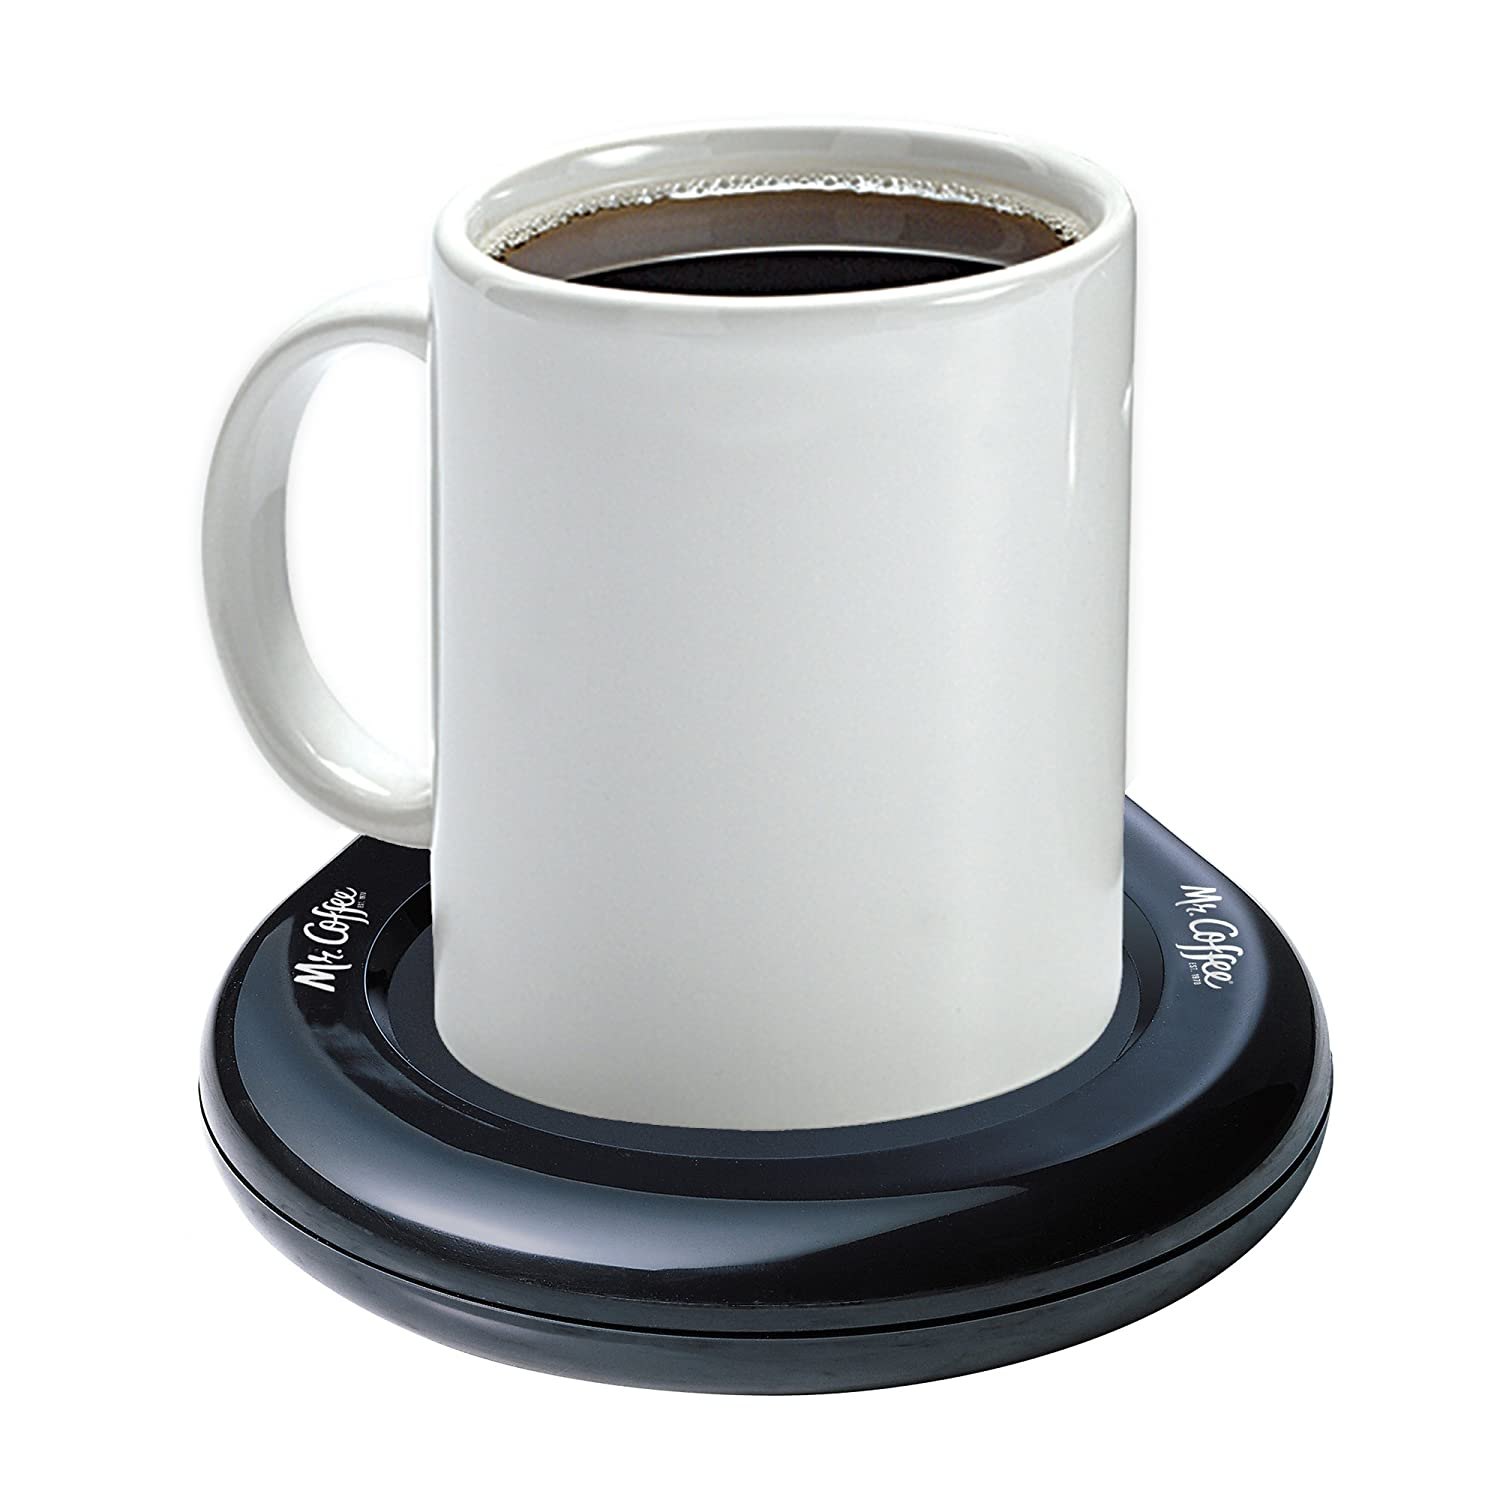 Mr. Coffee Mug Warmer for Office/Home Use, MWBLK